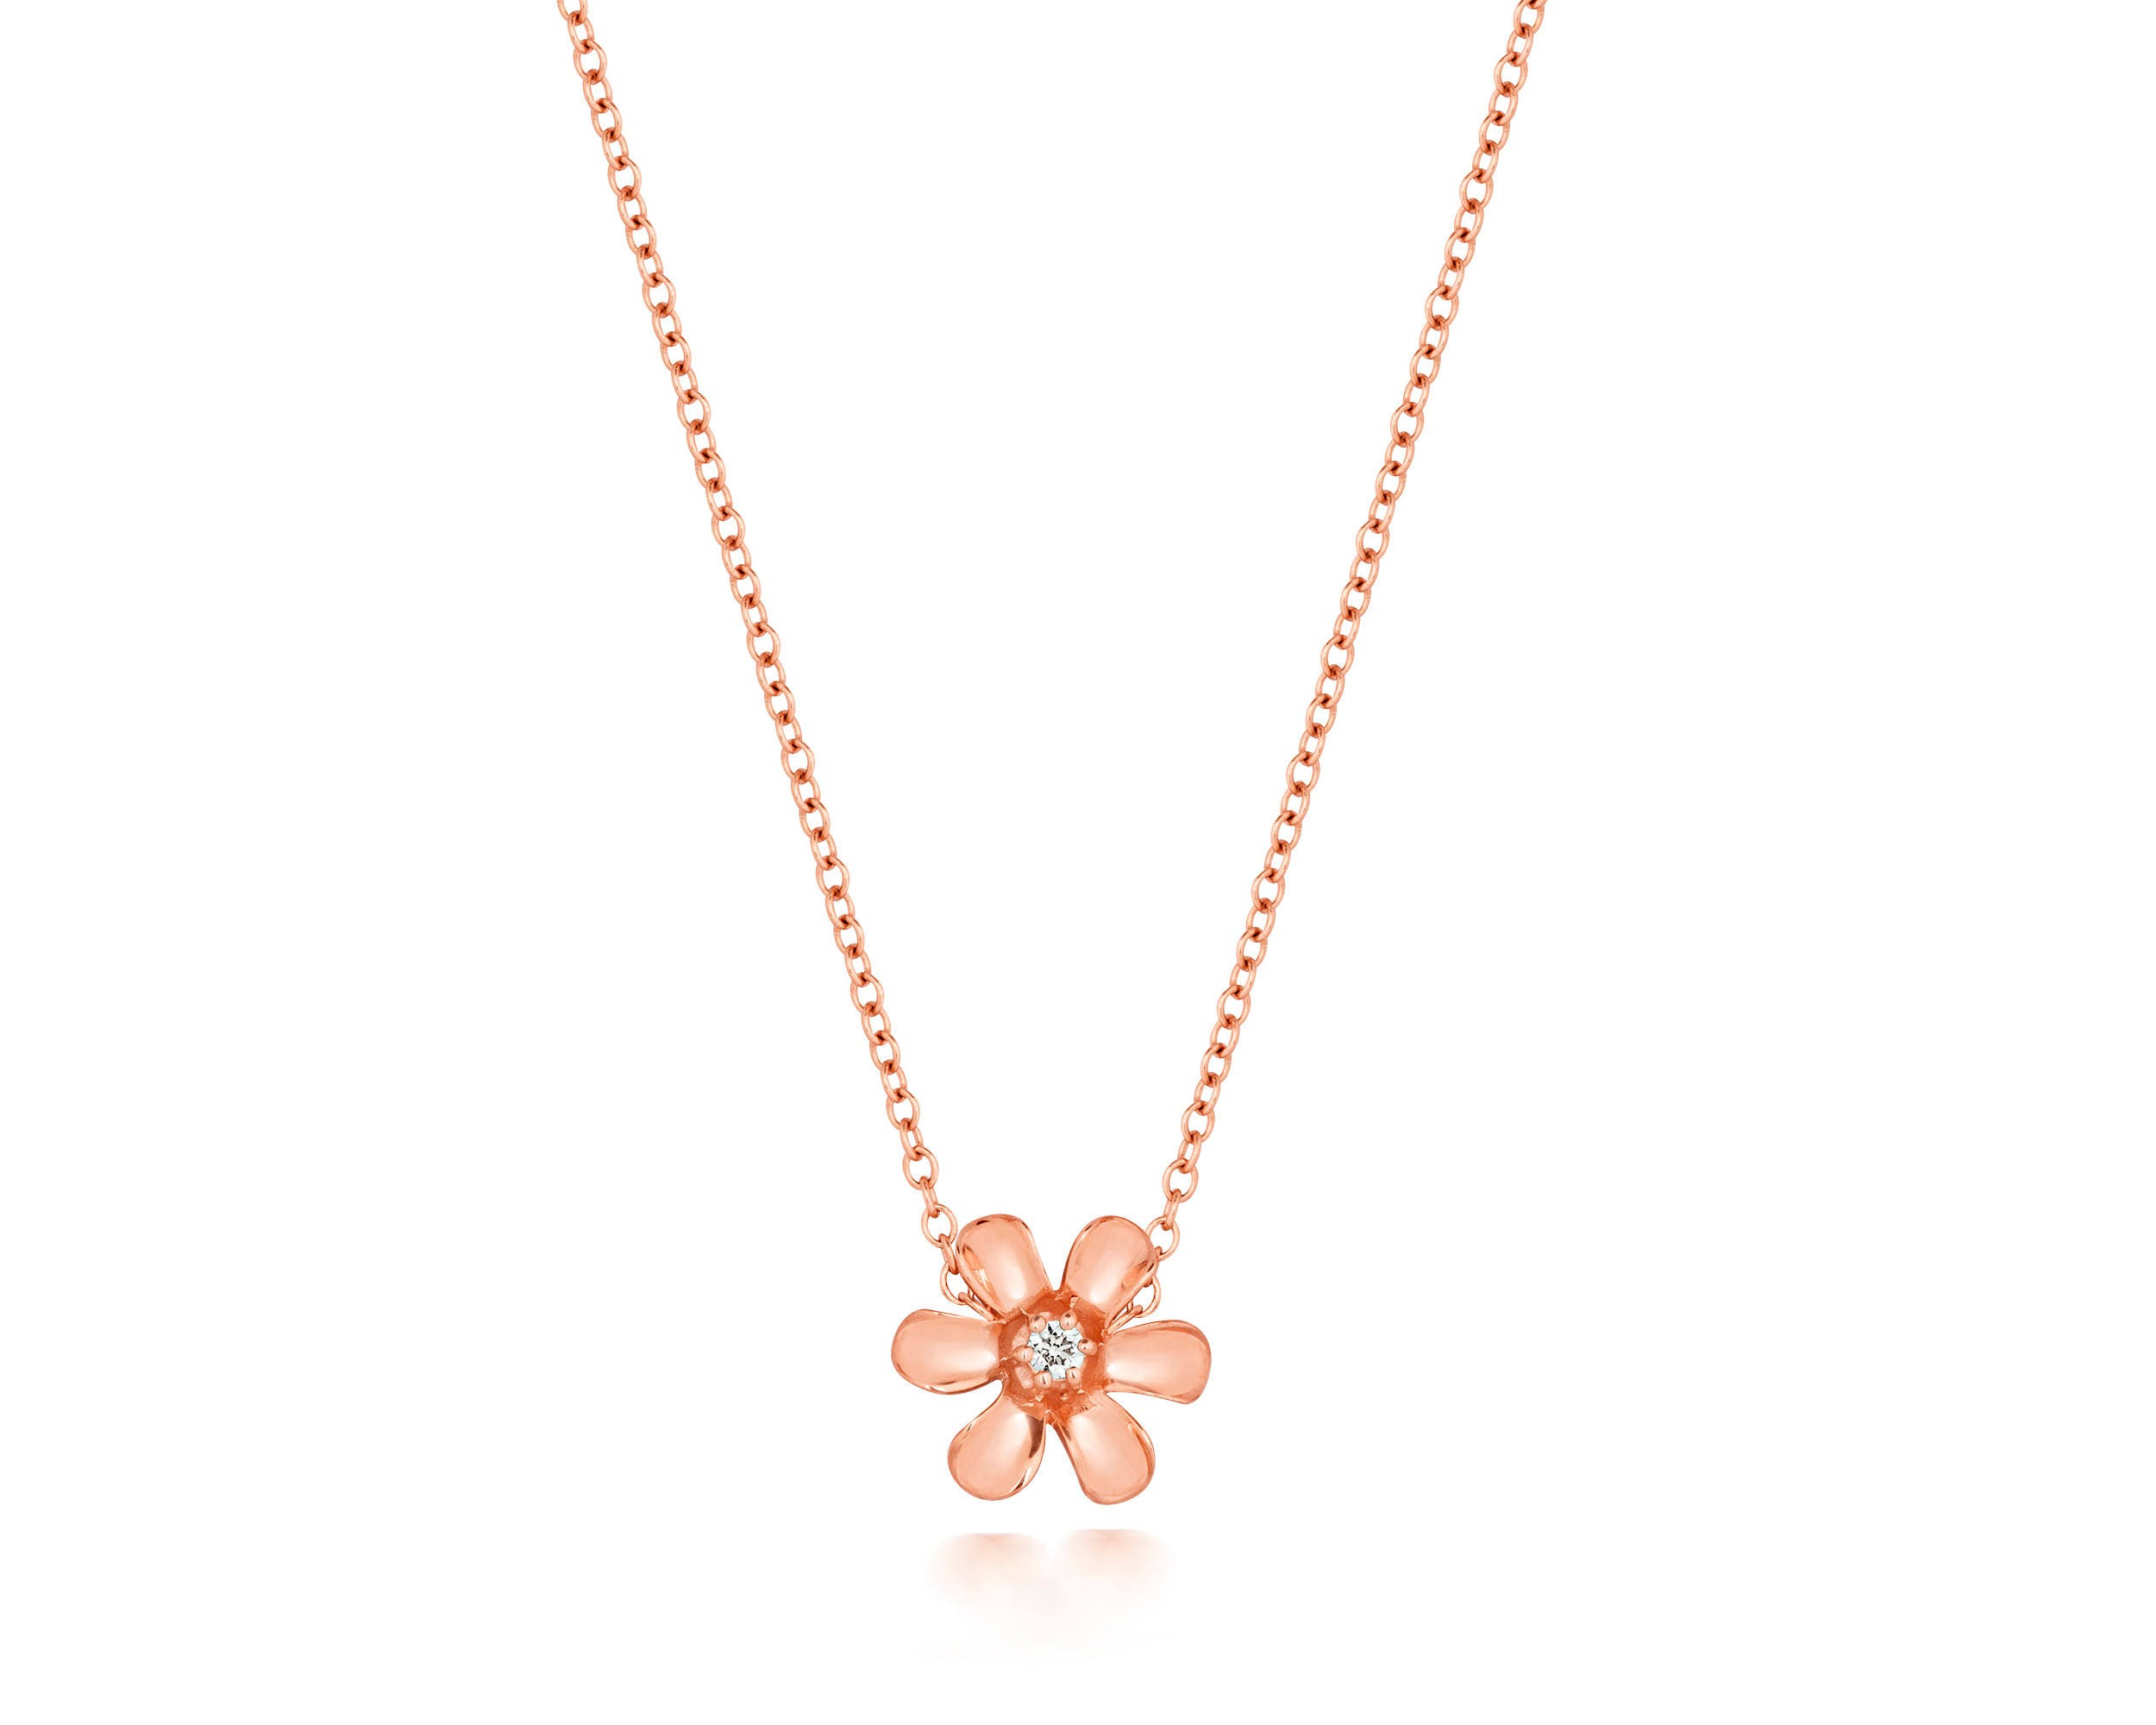 along plain heart chain products rests pendant by and necklace the polished bloom locket thai cable details full pn daisy created sterling necklaces is a striking silver presents in